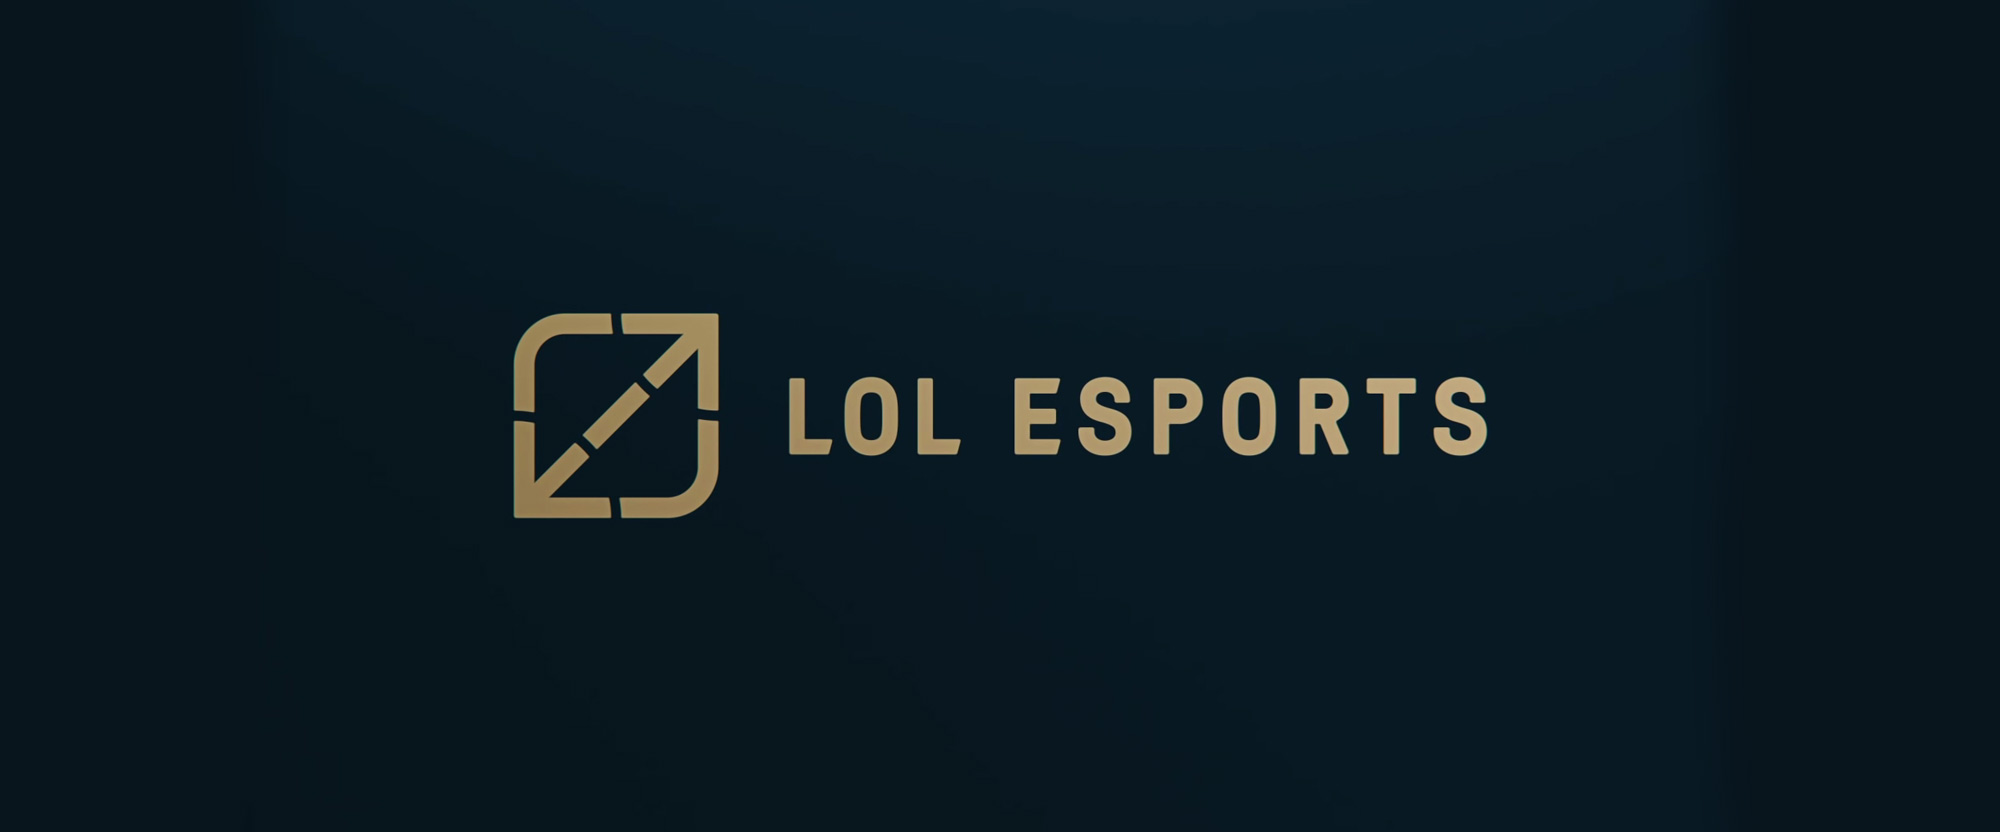 New Logo and Identity for LoL Esports by Cory Schmitz